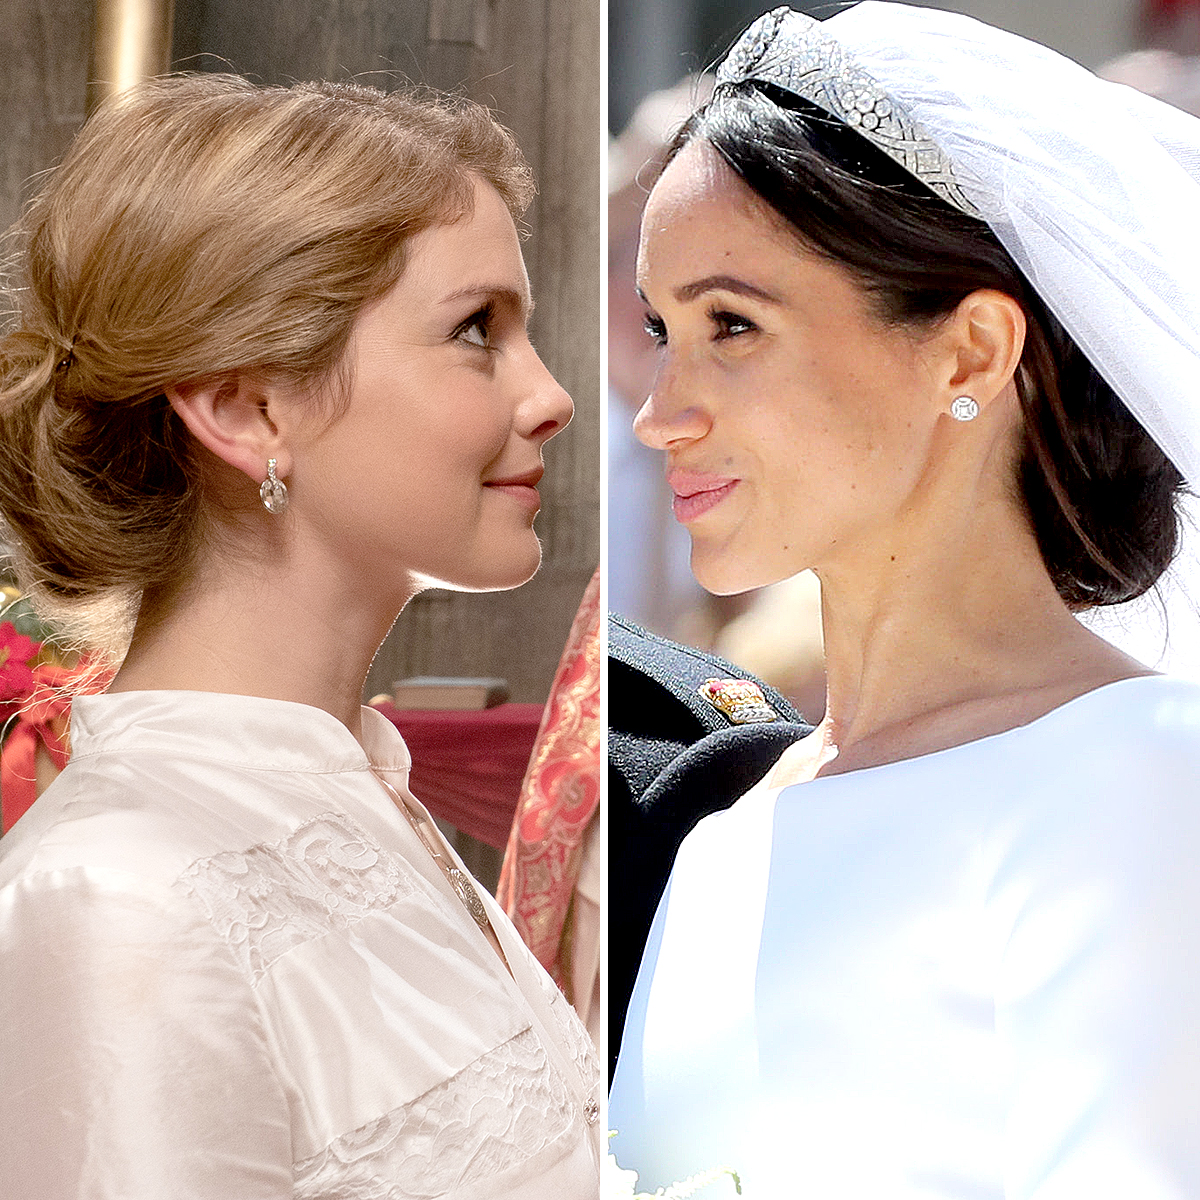 Royal Wedding Time In Us.A Christmas Prince 2 Was Very Similar To The 2018 Royal Wedding